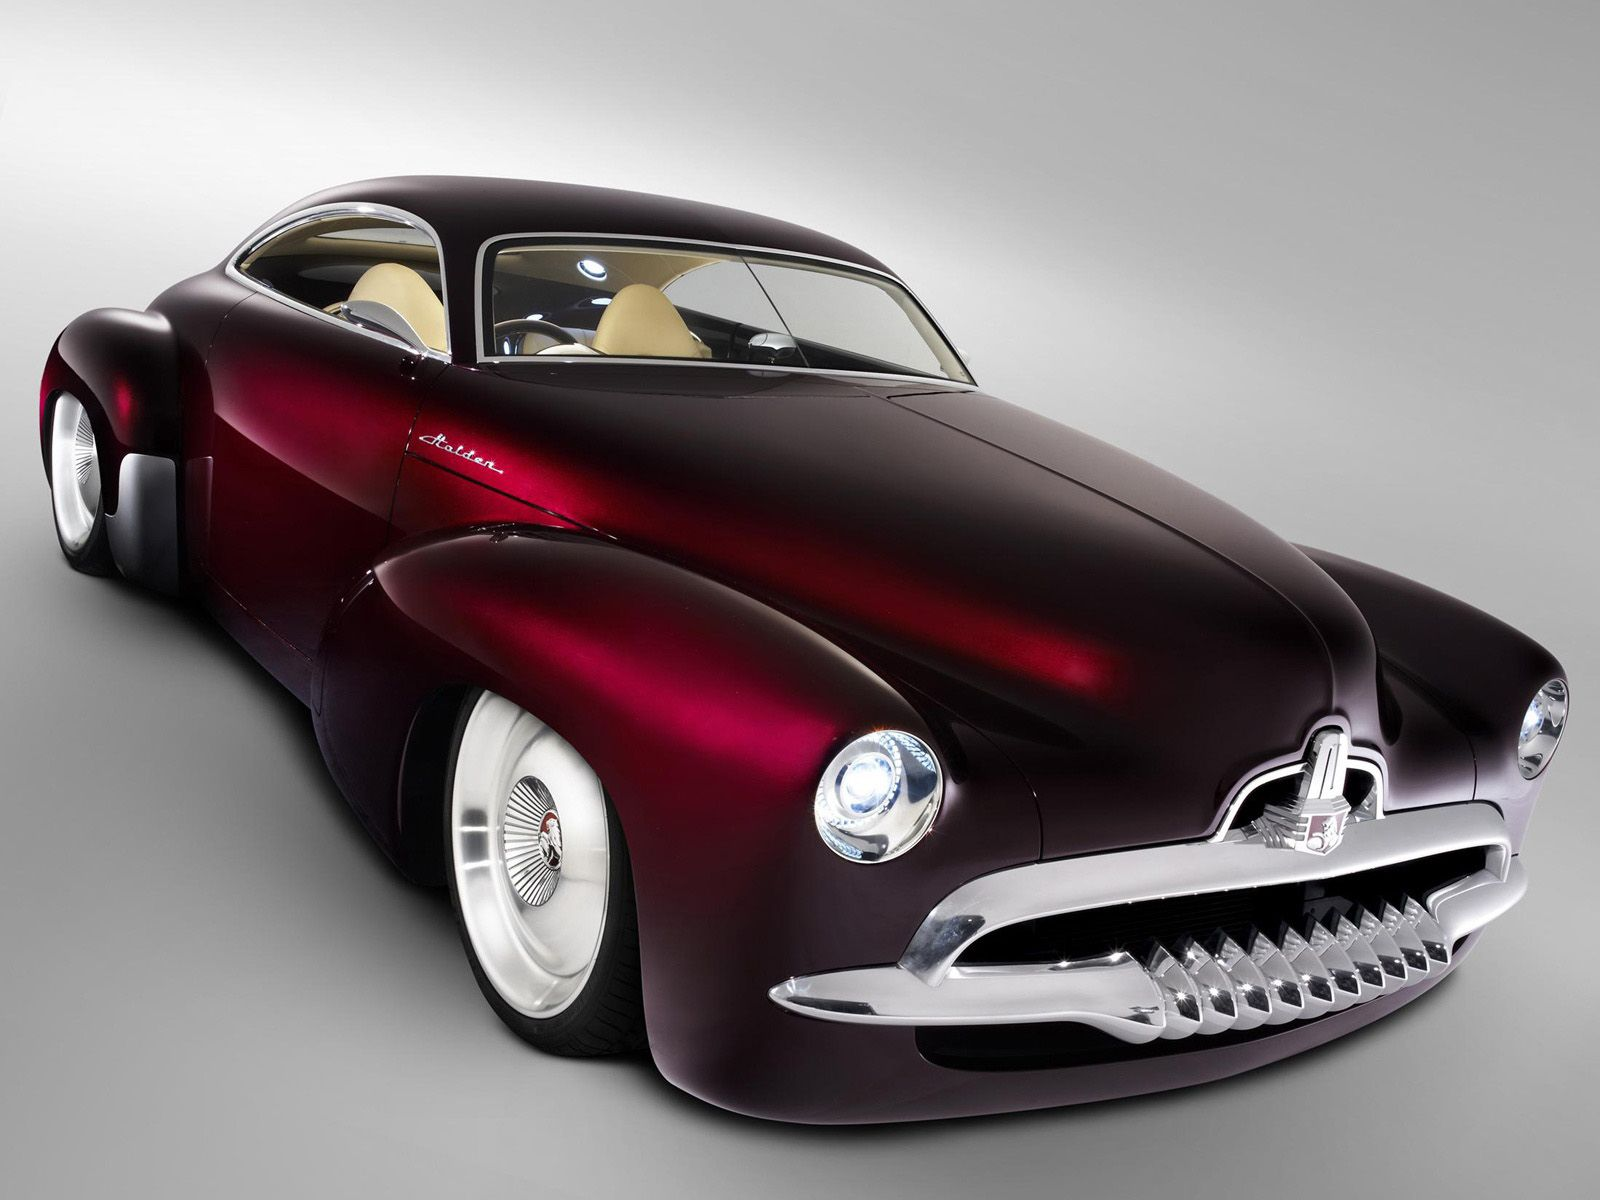 Hot Rod Wallpapers - A Link to the Past - MuscleDrive   Cars ...